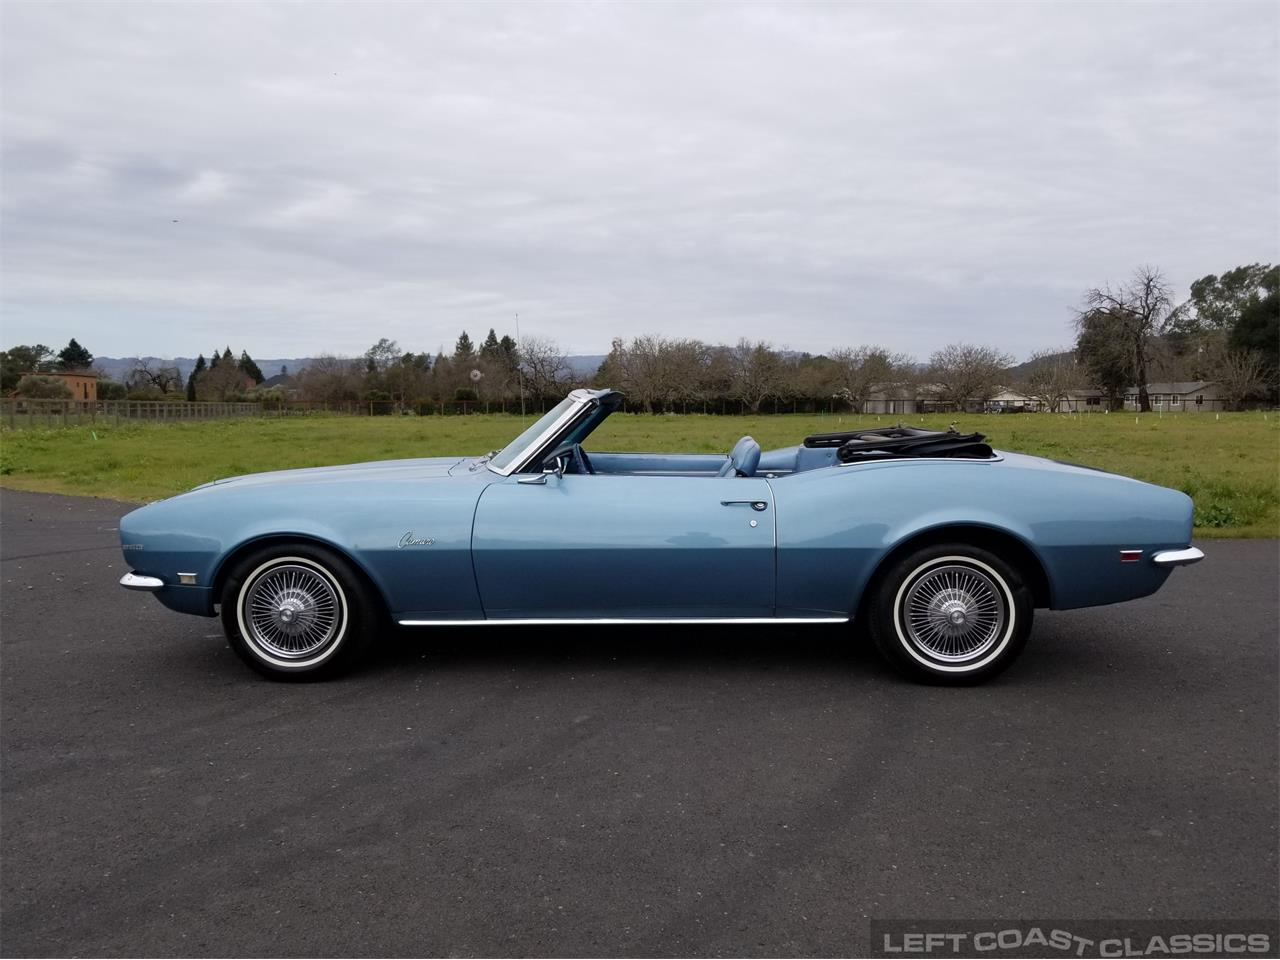 Large Picture of Classic 1968 Camaro located in Sonoma California Offered by Left Coast Classics - PNQK